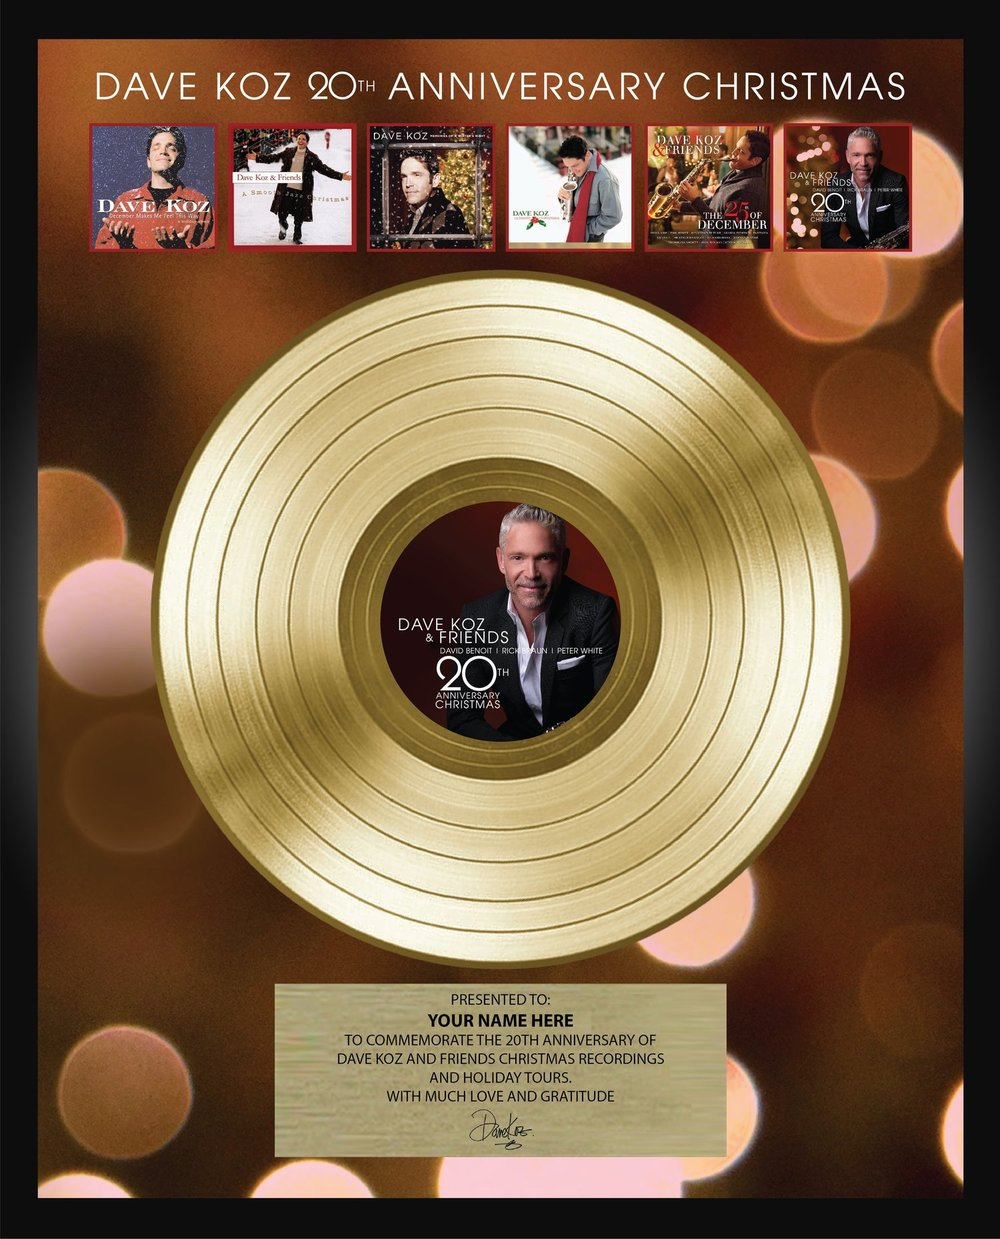 Classic 16 x 20 Gold Album Award $275.00 This Classic Gold Album Award is Personalized with YOUR NAME . It comes with a Certificate of Authenticity Hand Signed by Dave and a heartfelt letter from Dave